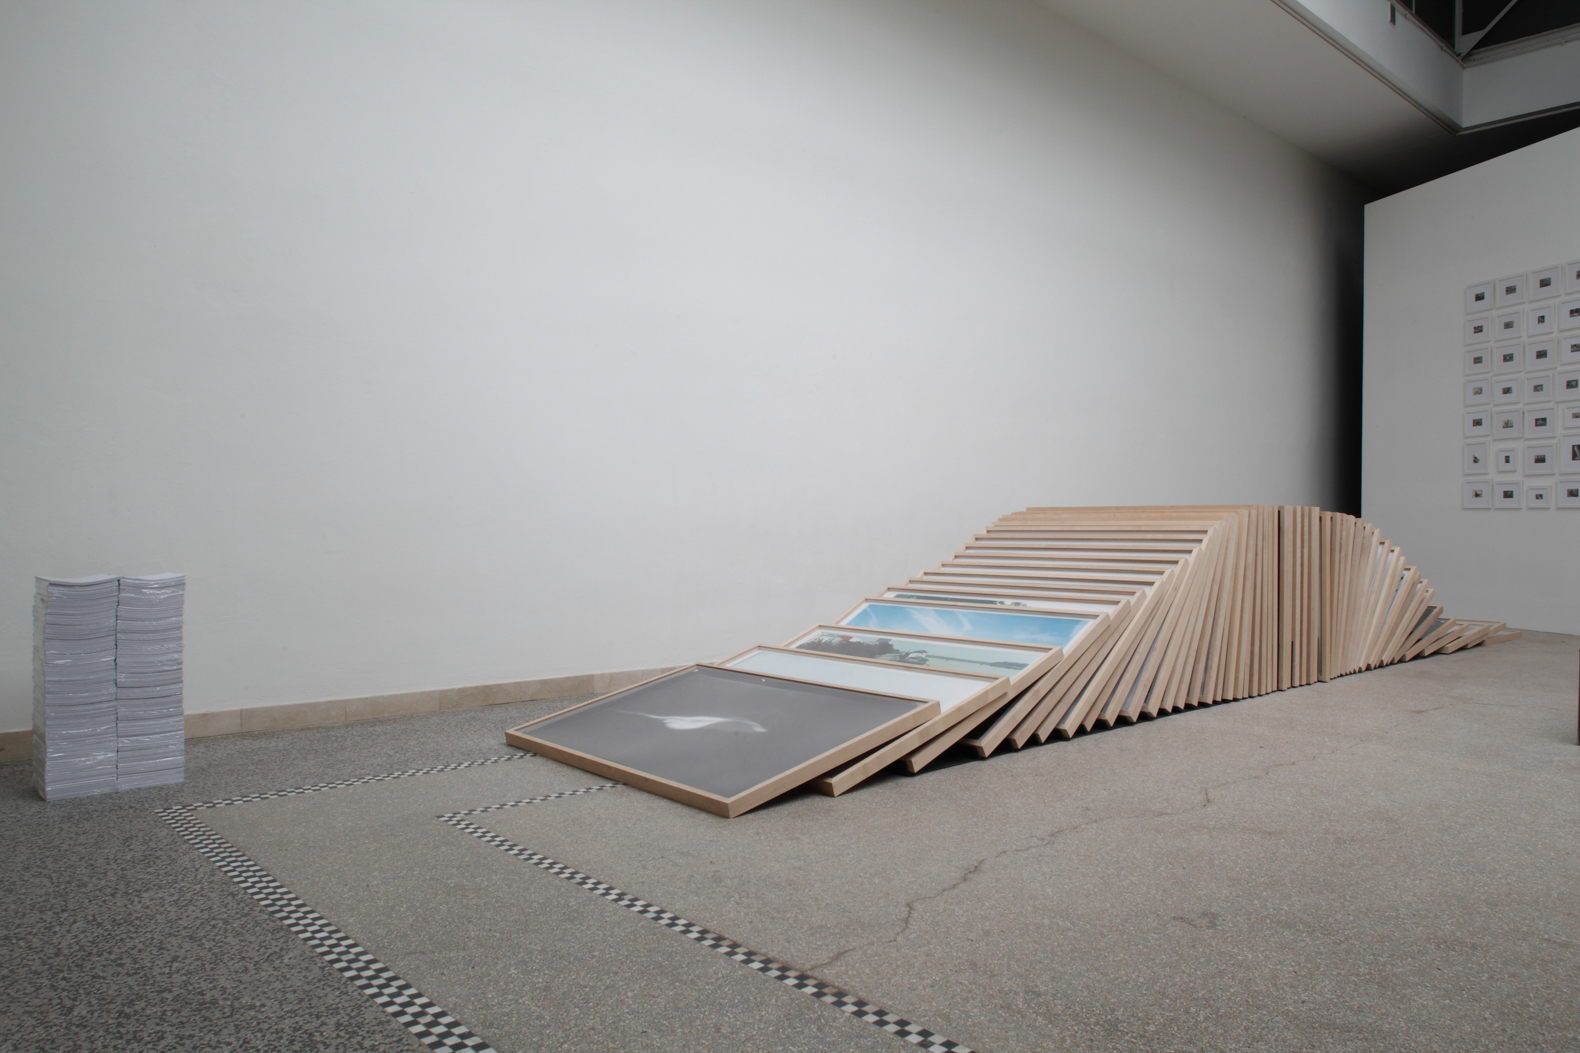 An Order of Things, installation view, Czech and Slovak Pavilion at the 55th Venice Bienniale, 2013